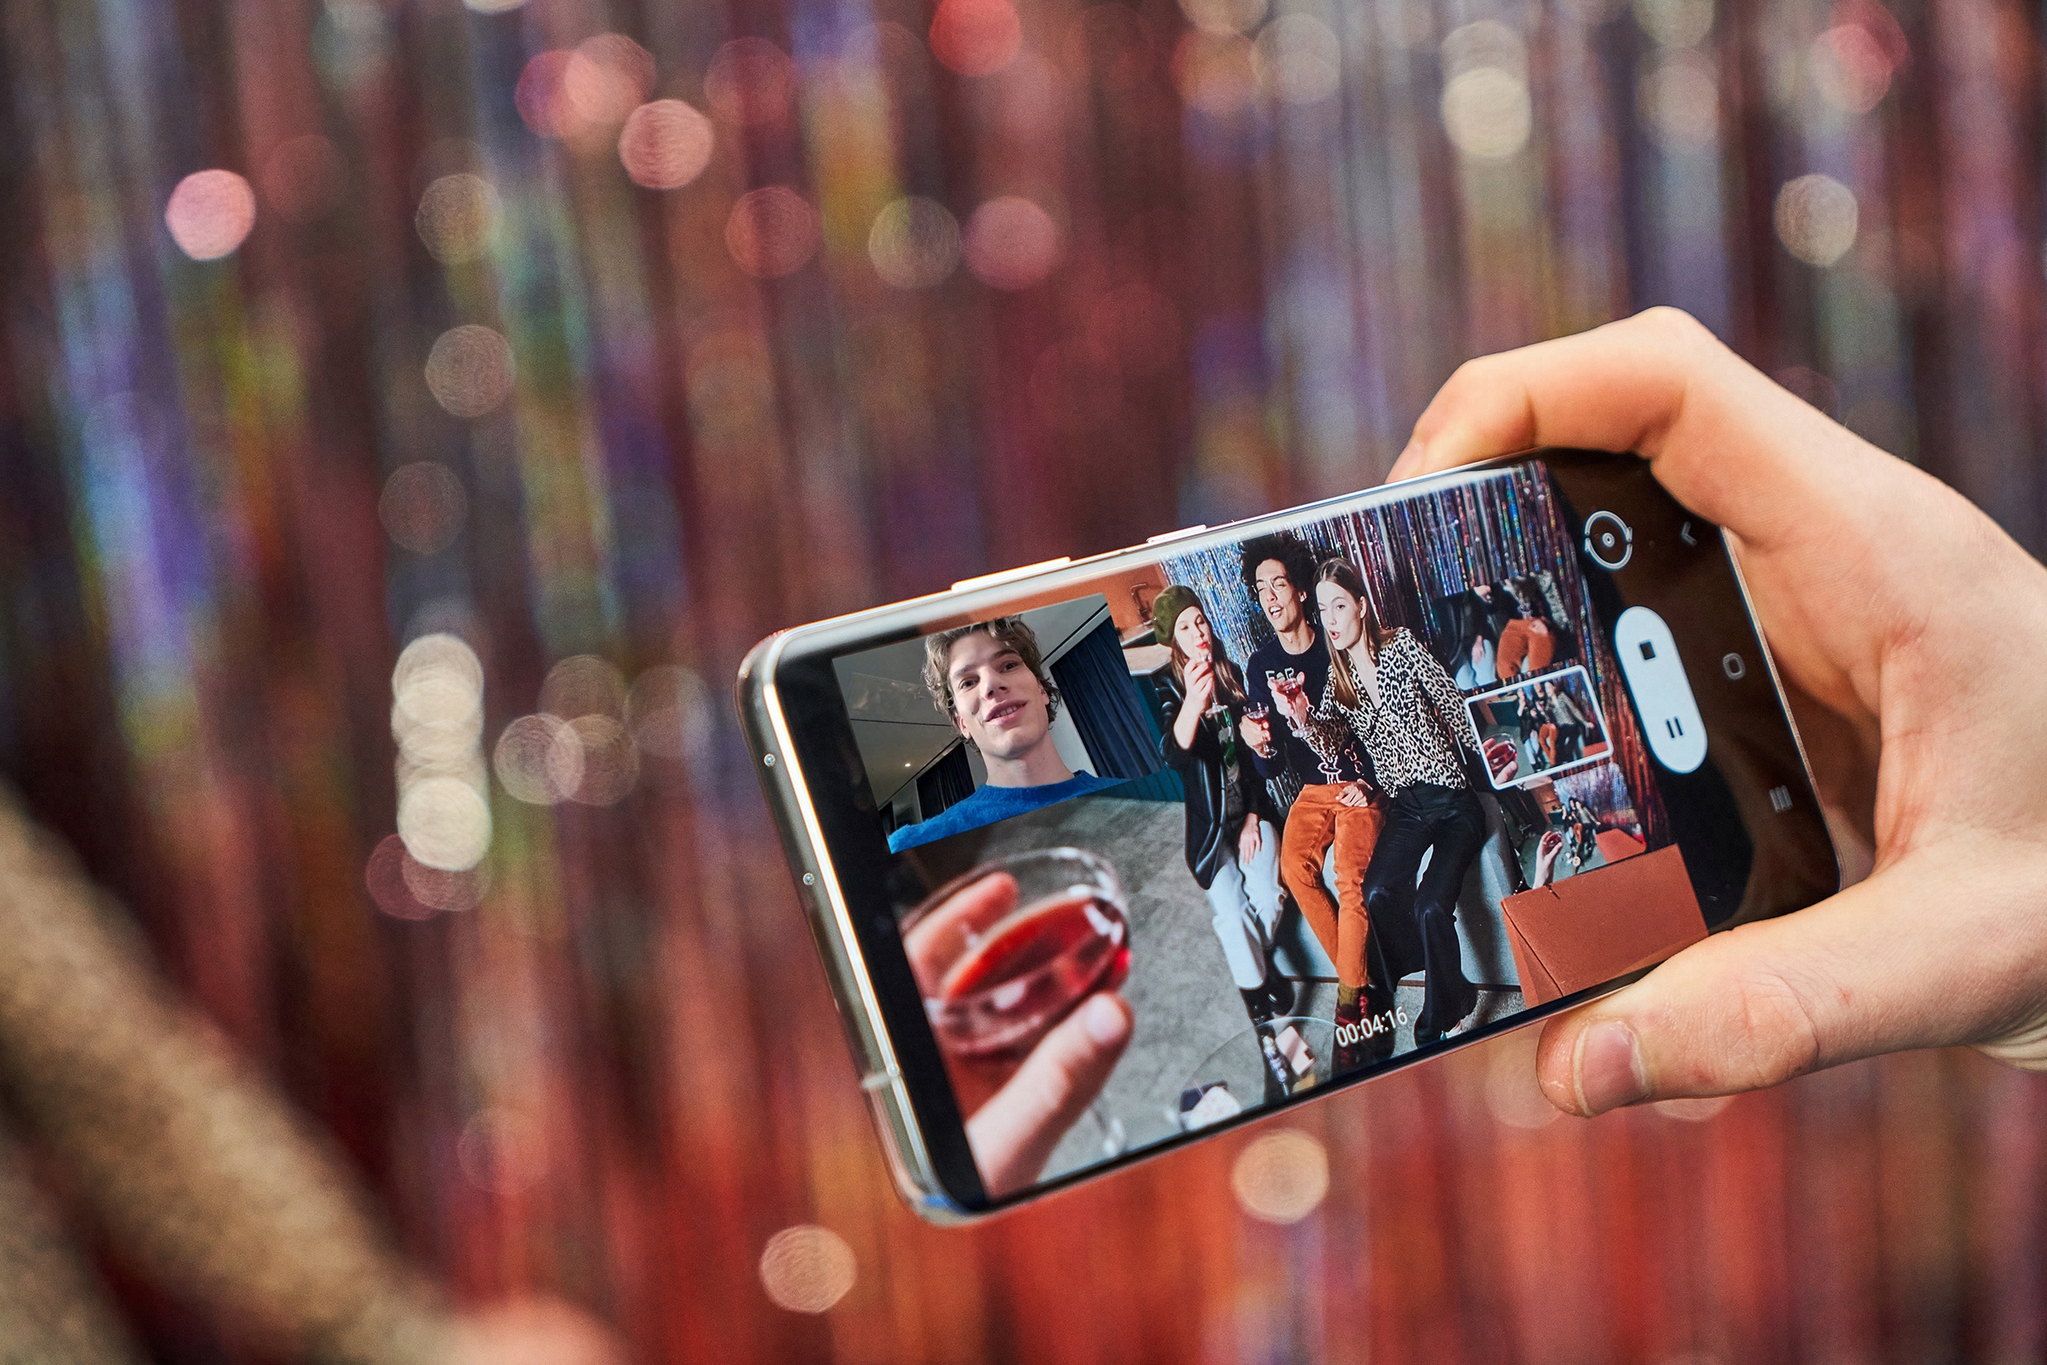 The Galaxy S21 Ultra pushes the boundaries of what a smartphone can do, with its most advanced pro-grade camera system and the brightest, most intelligent display. [SAMSUNG ELECTRONICS]